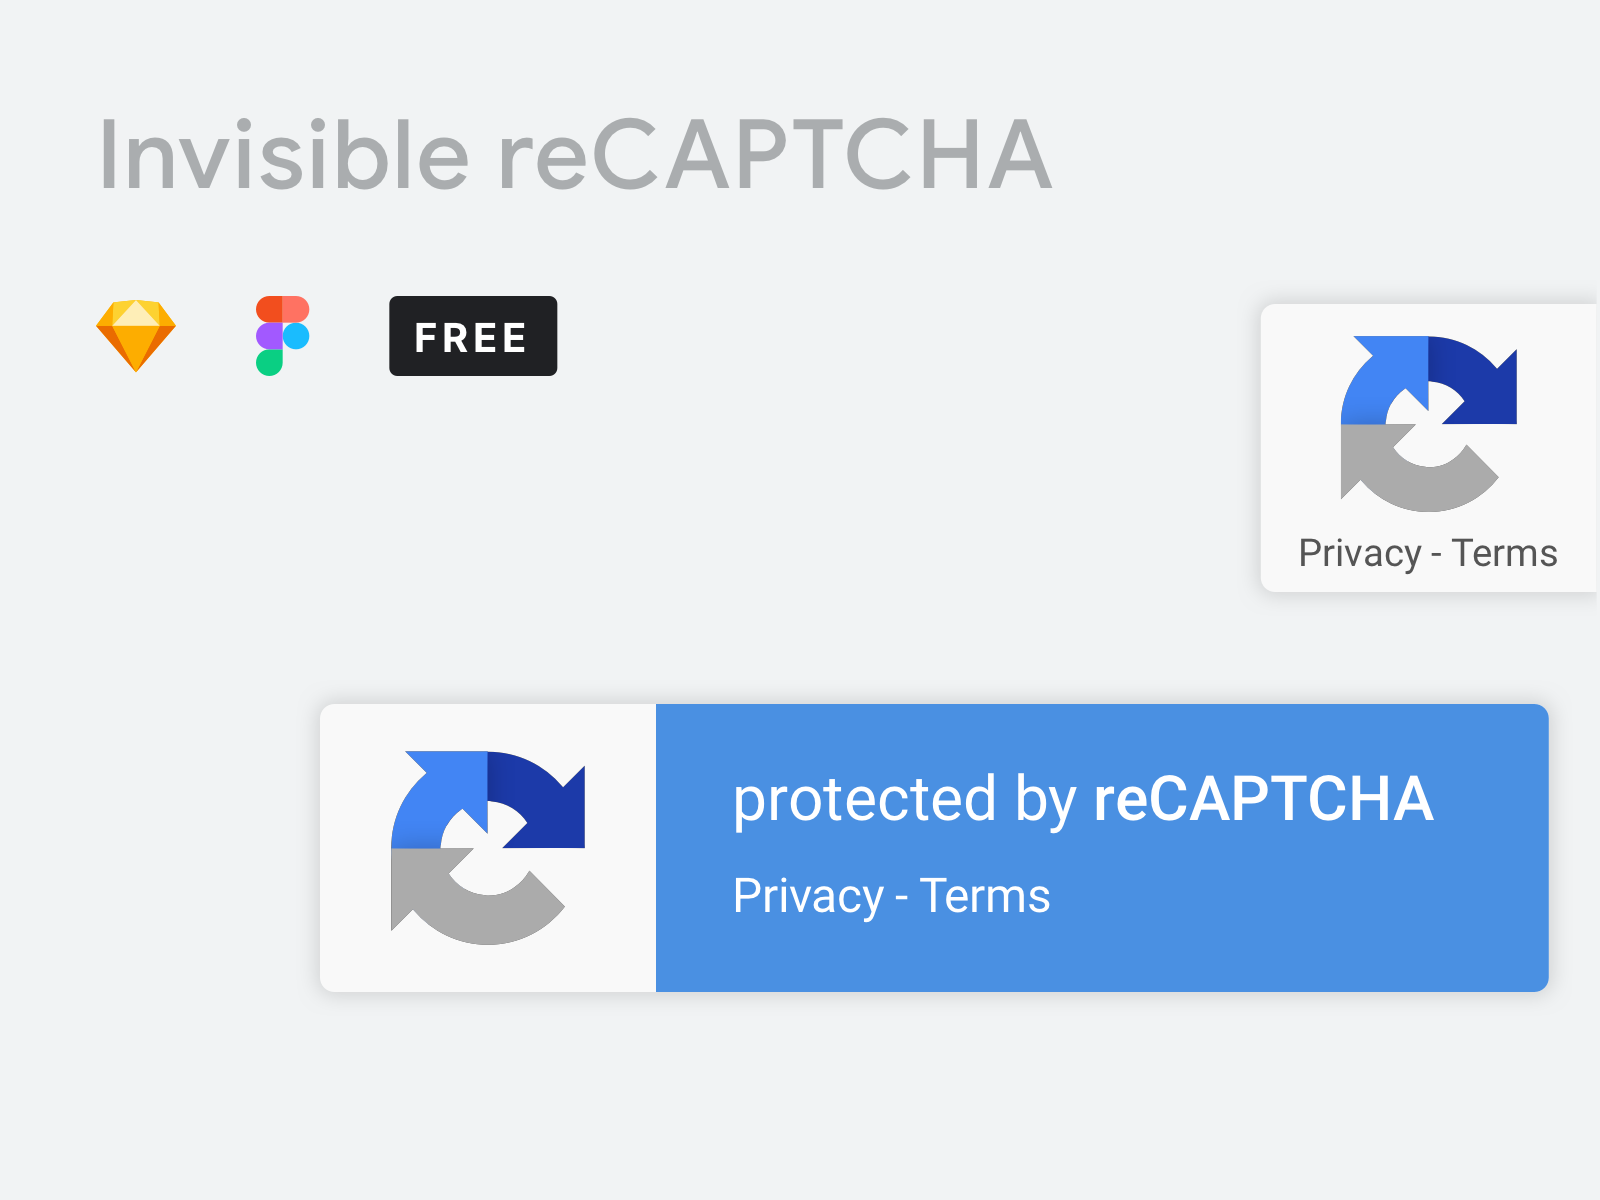 Google Invisible reCAPTCHA Library - Sketch and Figma Freebie by Ashar  Setiawan on Dribbble